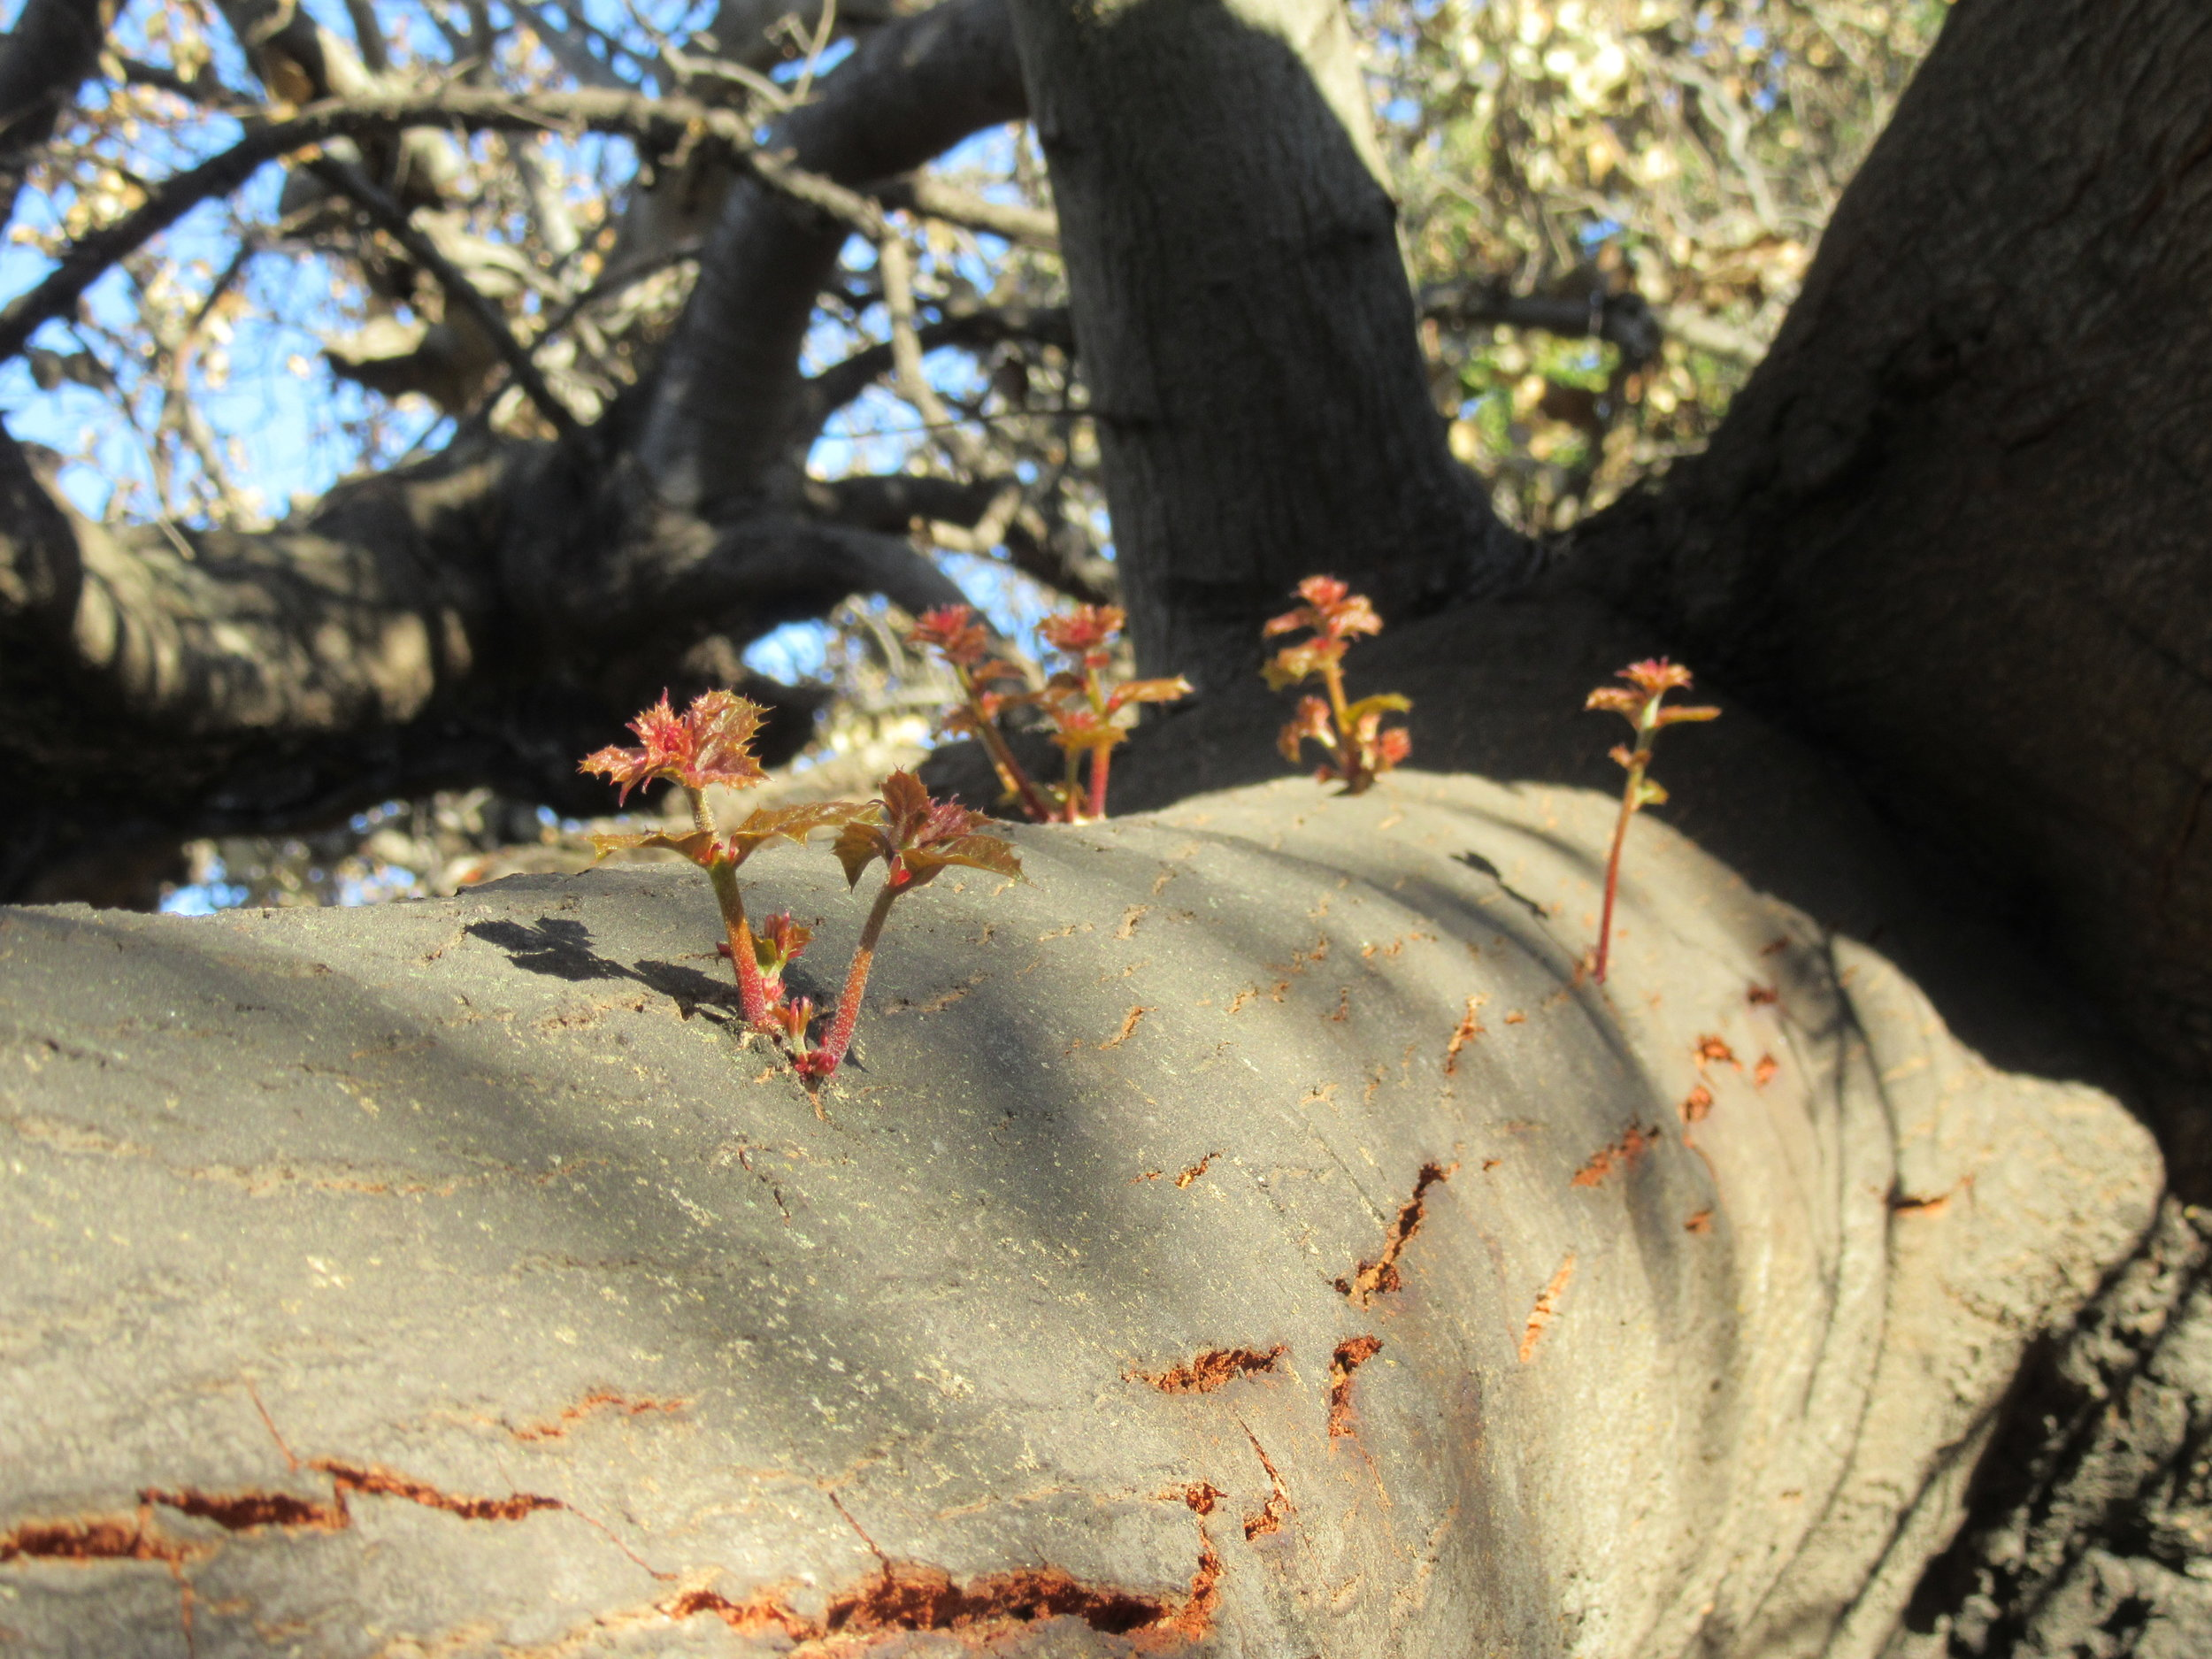 NEW GROWTH on one of the limbs of Baba's Tree just two months after the December 2017 Thomas Fire. (Photo: Sam Ervin, February 5, 2018)